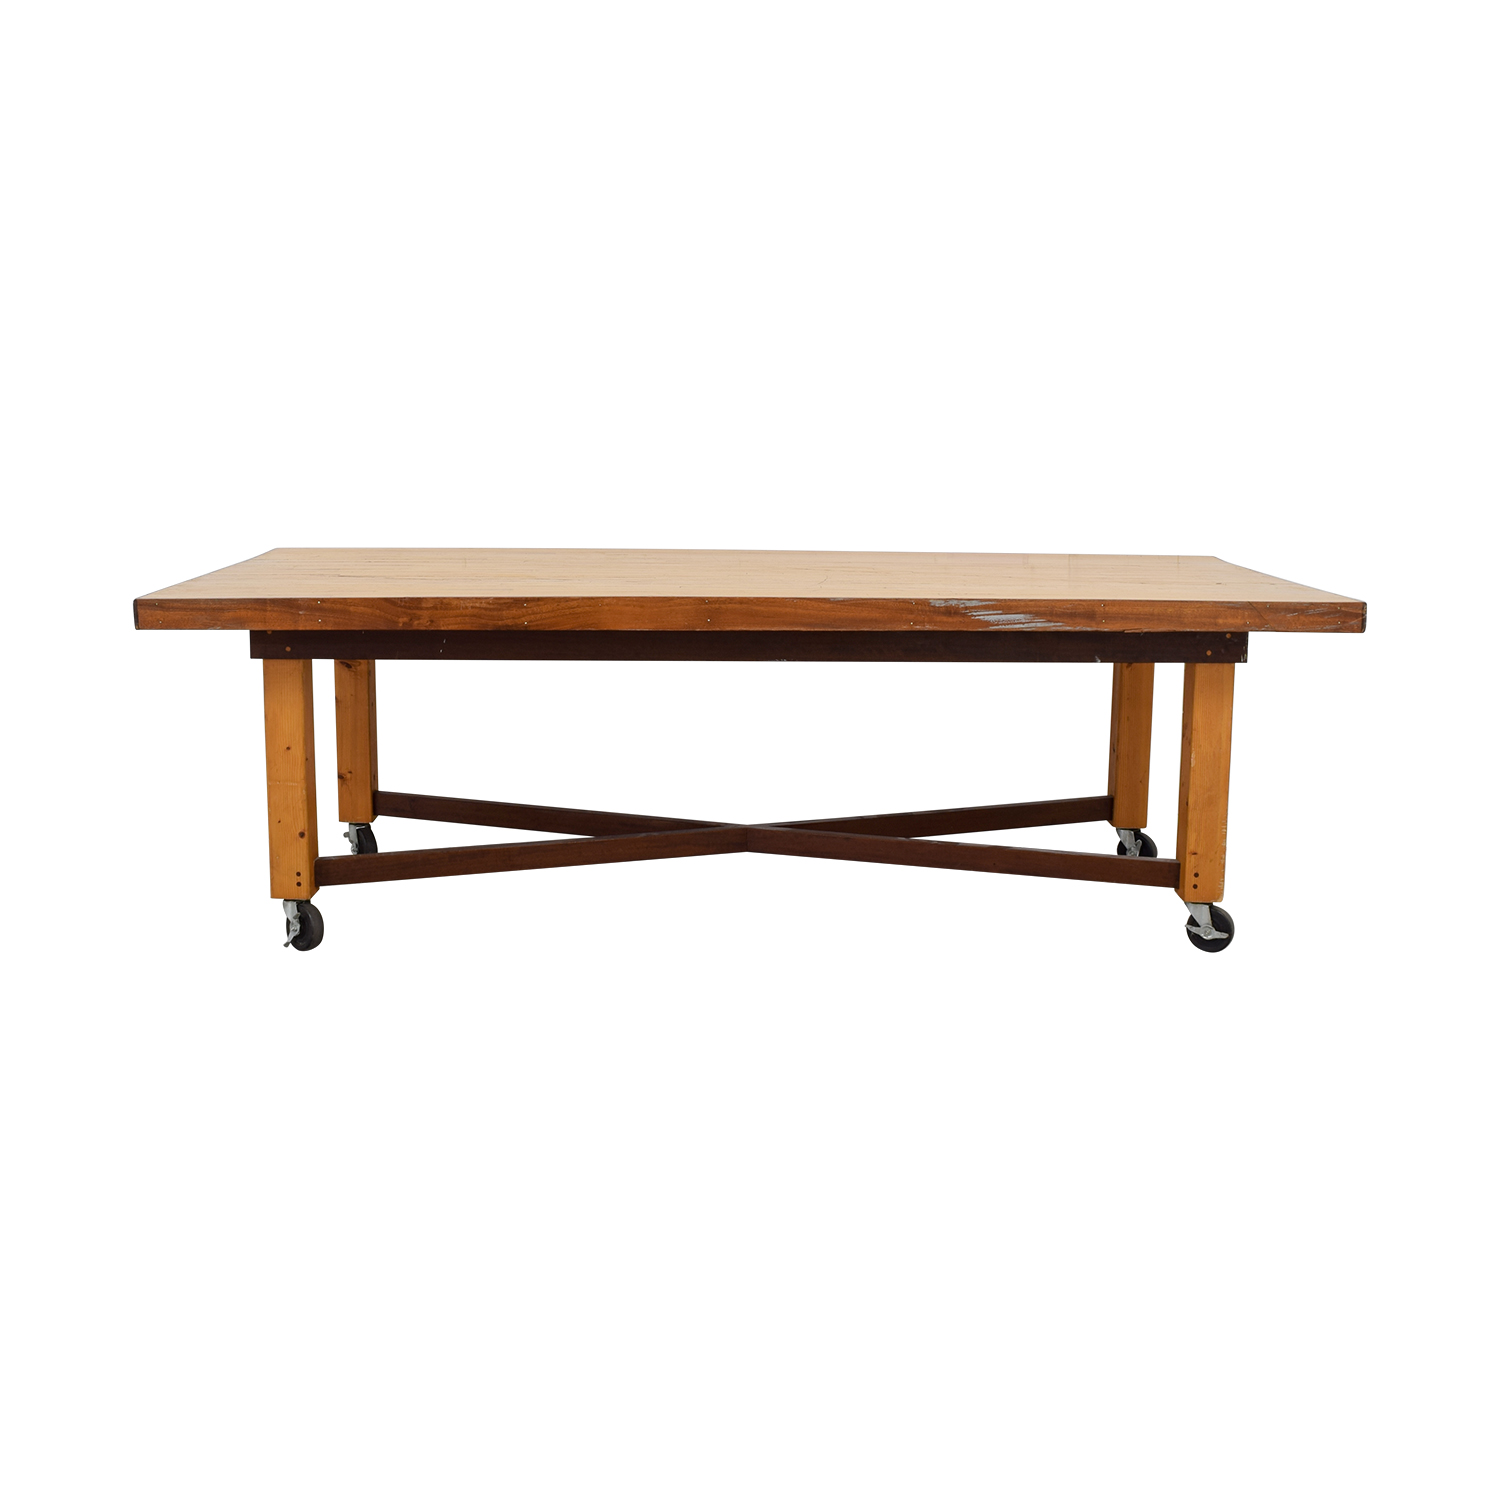 Bowling Alley Wood Dining Table dimensions